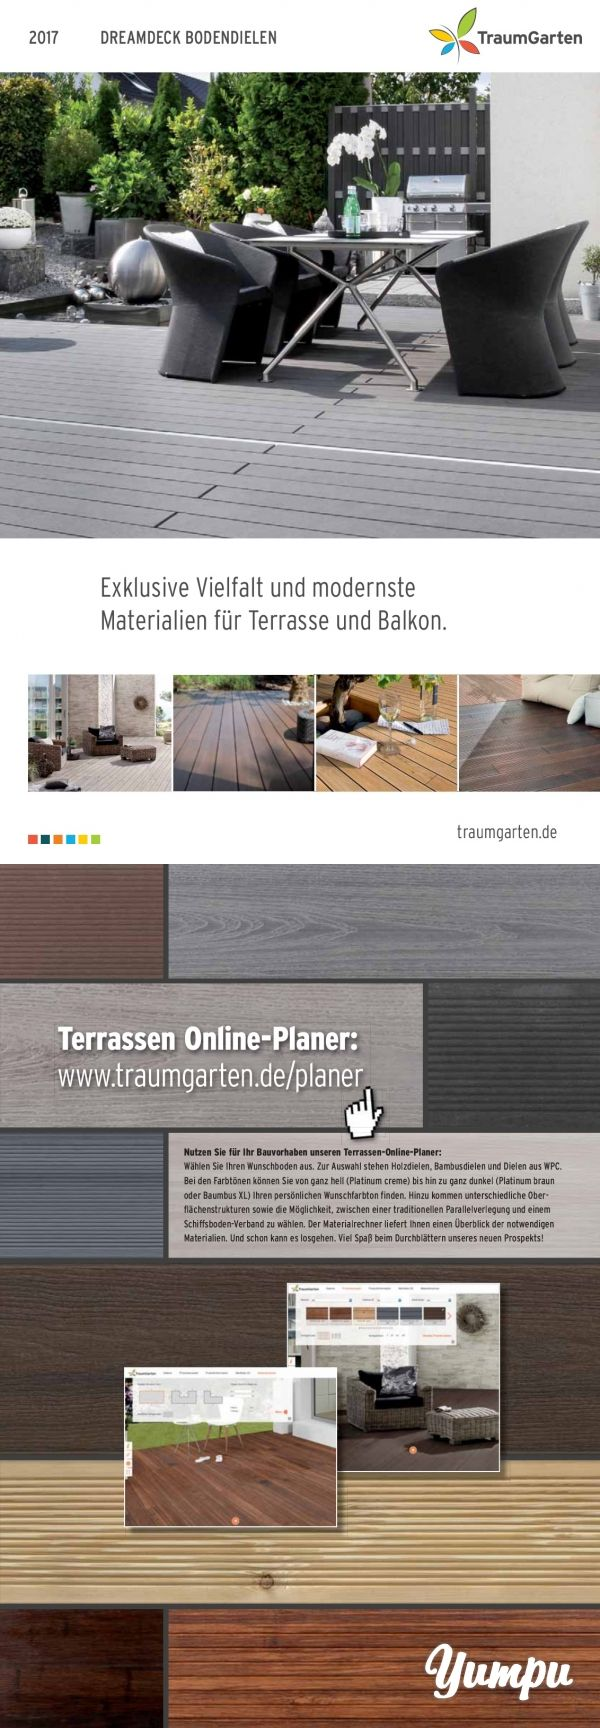 die besten 25 wpc terrassendielen ideen auf pinterest graues deck wpc bretter und wpc. Black Bedroom Furniture Sets. Home Design Ideas